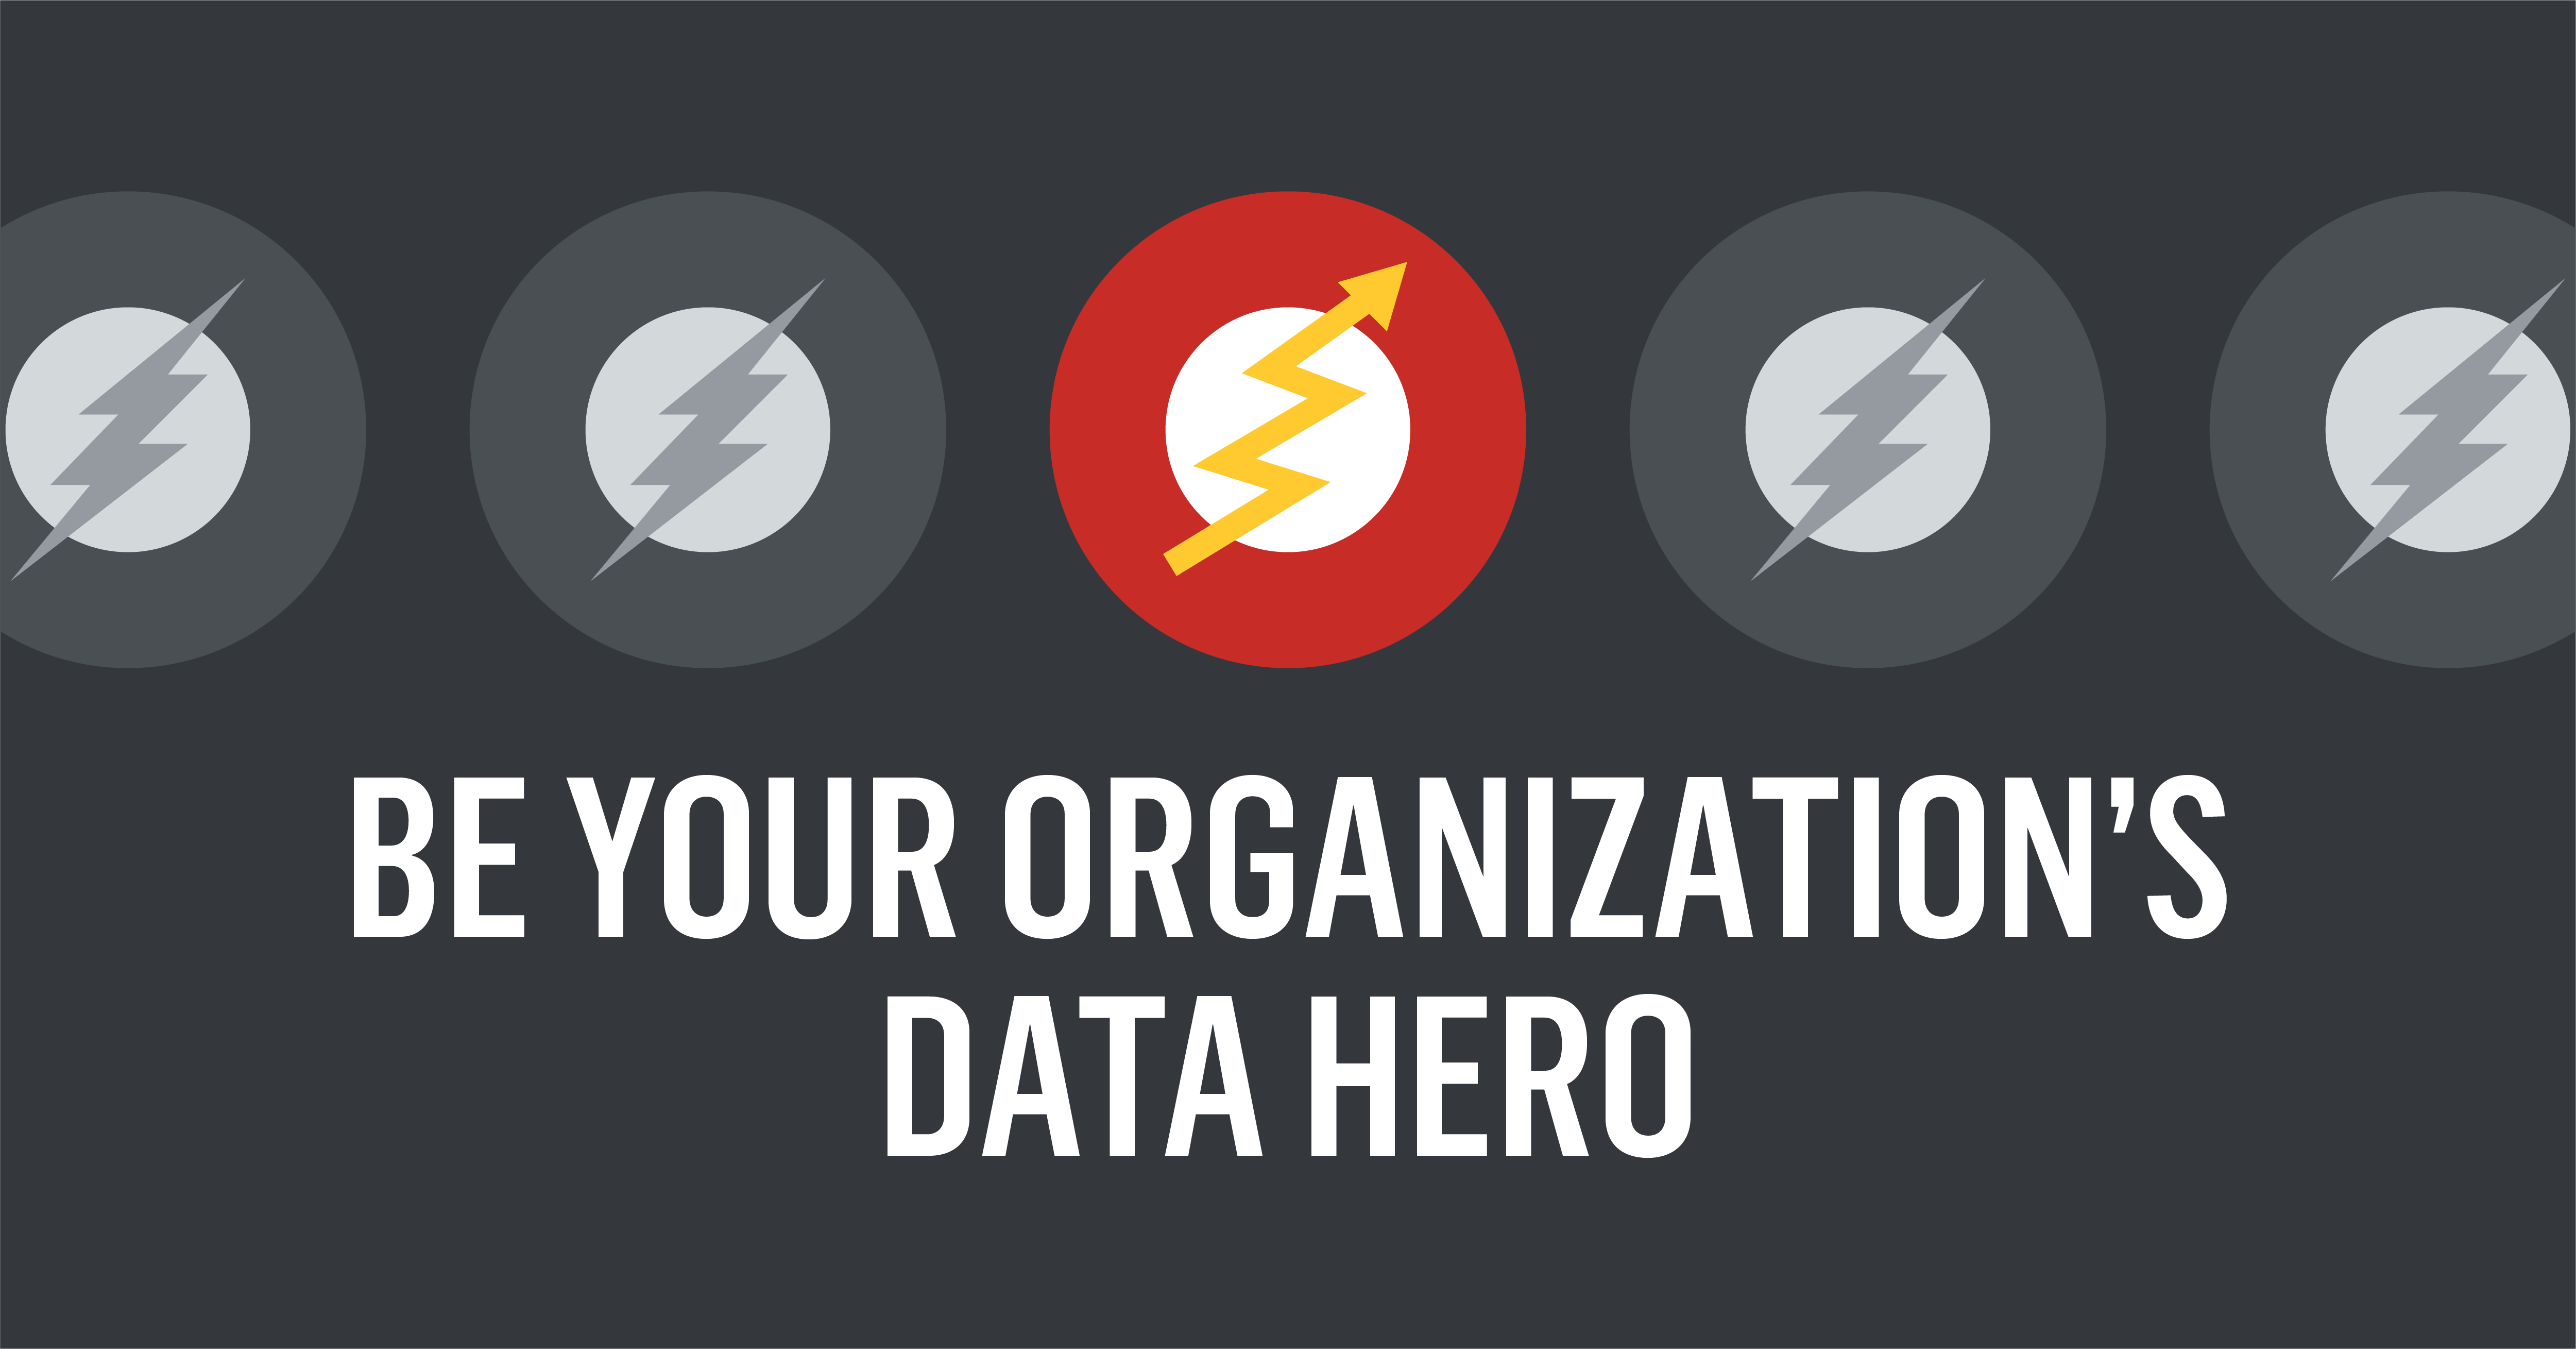 Blog 2017.10 Be Your Organization's Data Hero-02.png